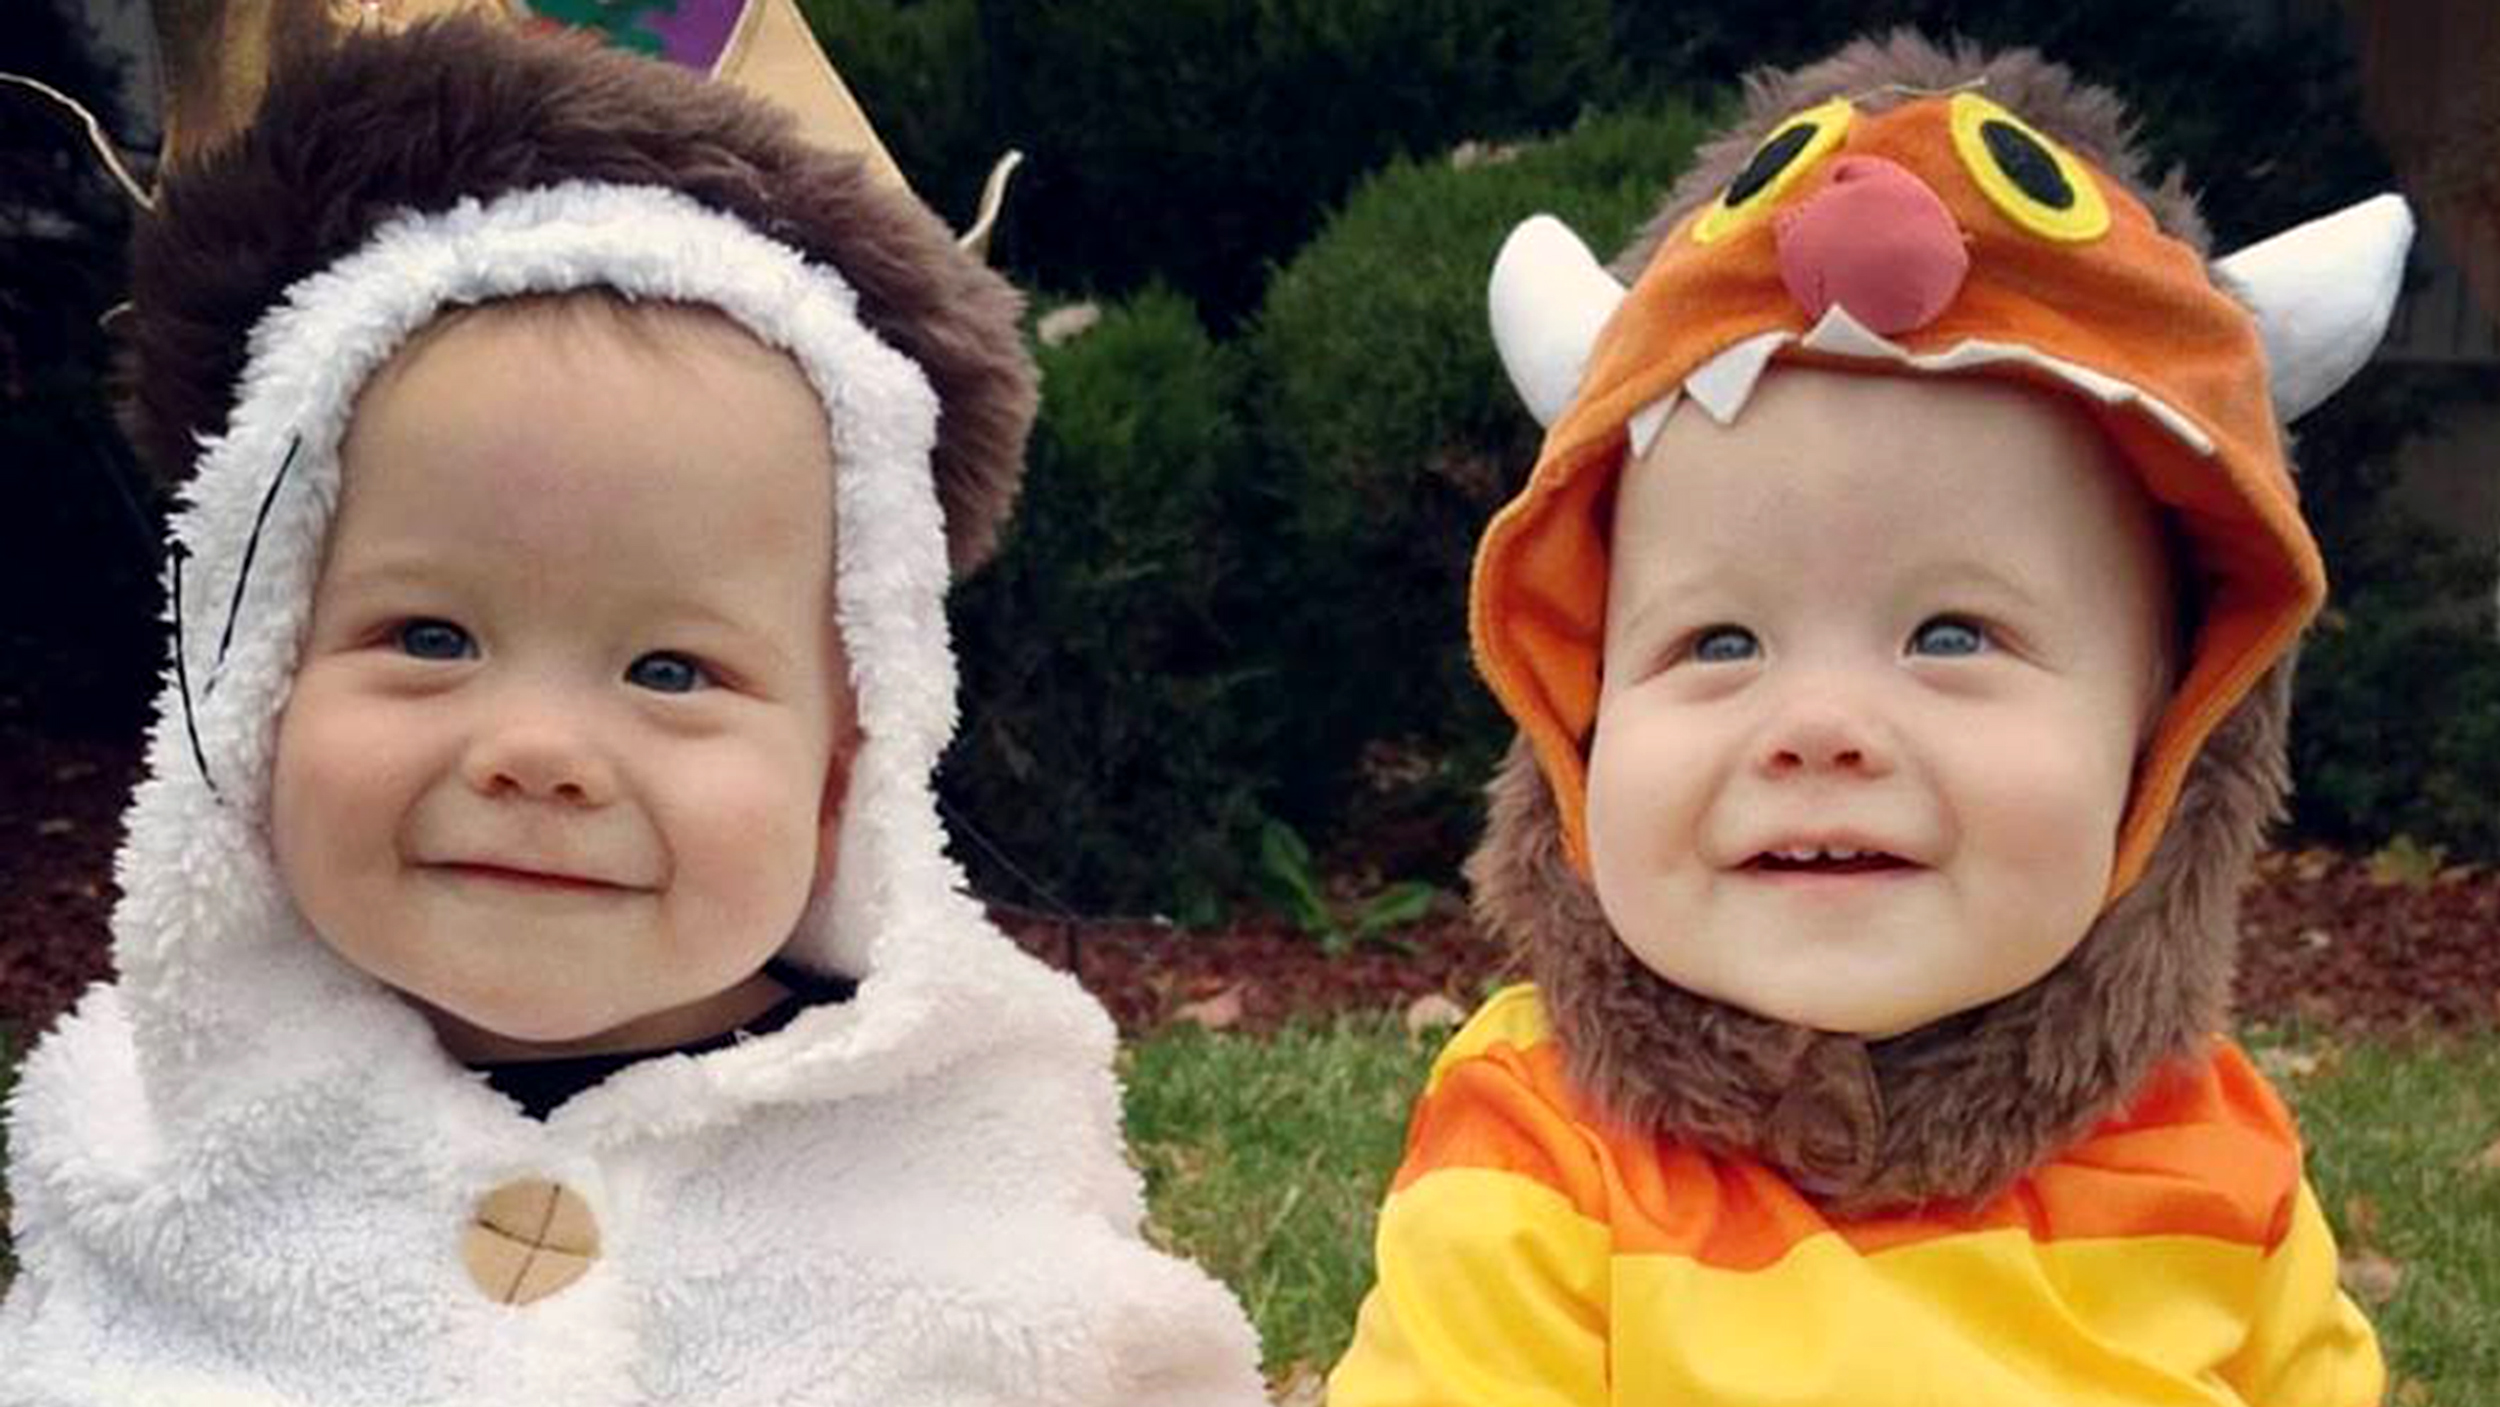 Sibling Halloween costumes 15 scary cute ideas TODAY